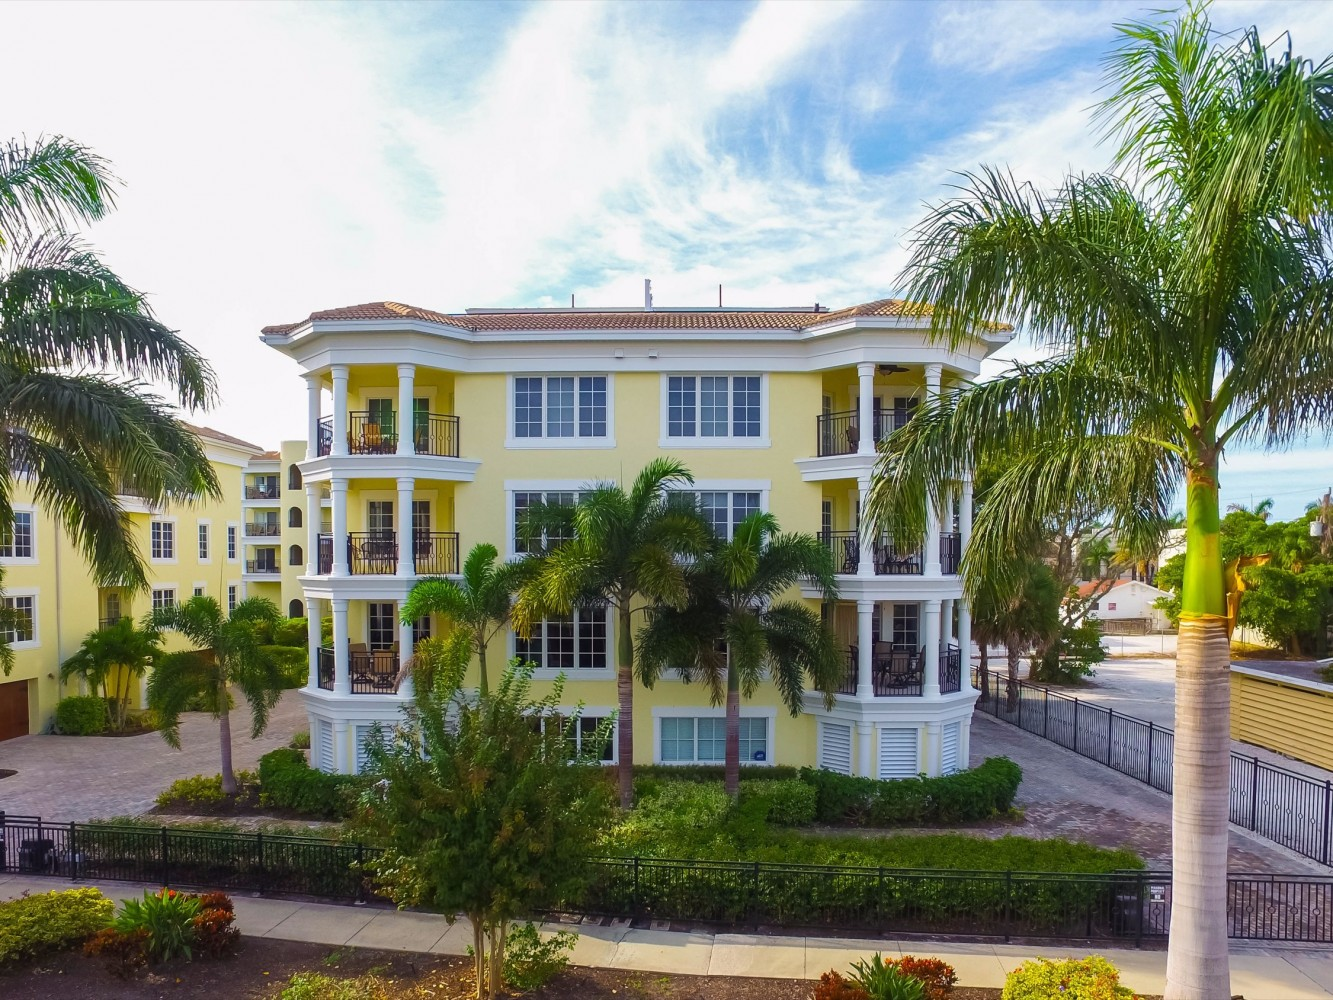 304-1 - Siesta Key Vacation Rentals